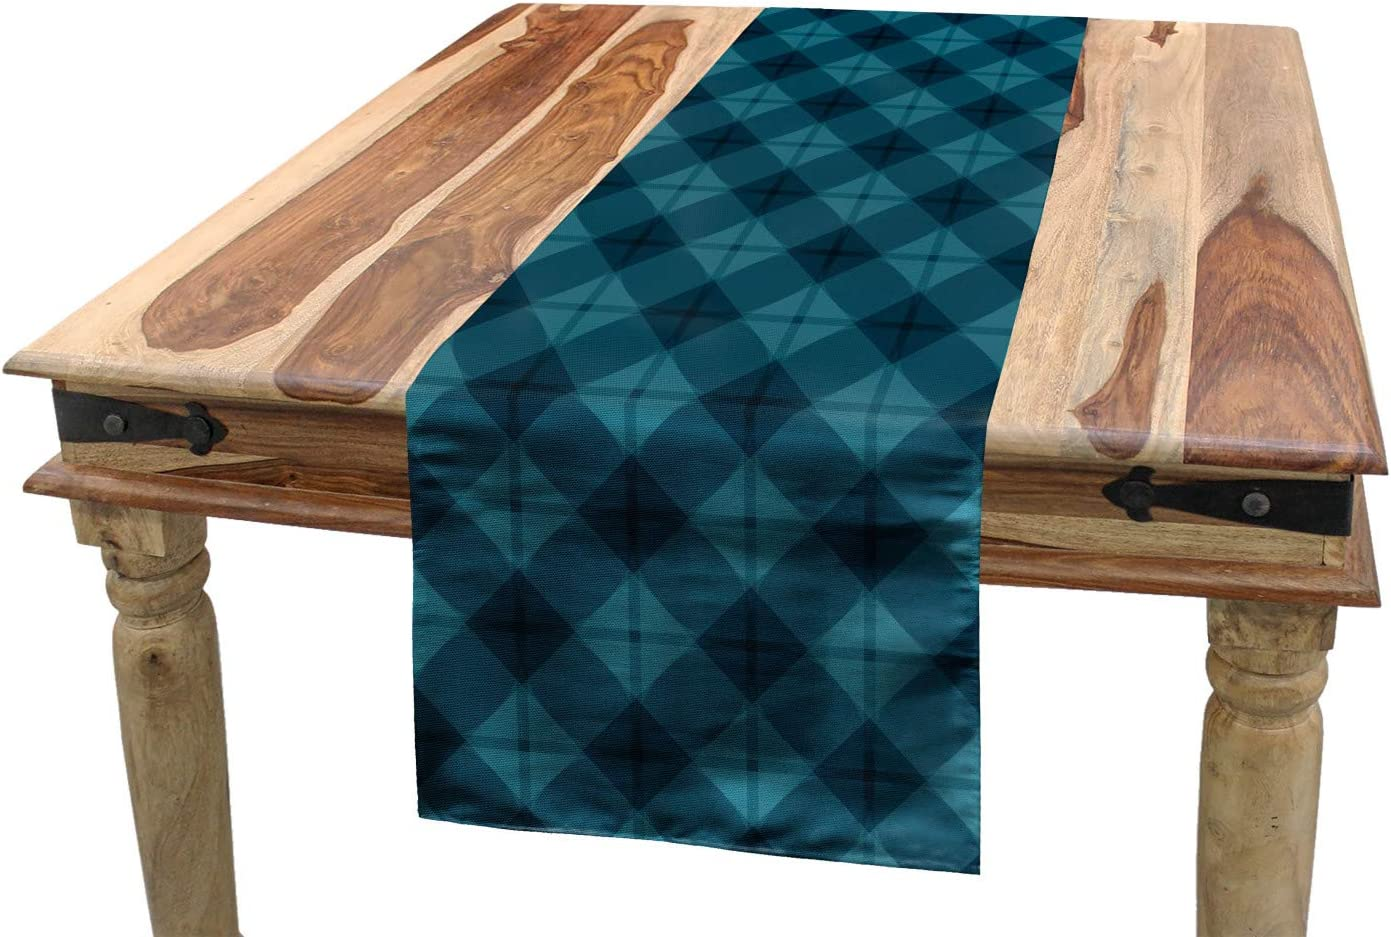 Amazon Com Ambesonne Dark Teal Table Runner Simple And Geometric Shapes Graphical Ornate Dining Room Kitchen Rectangular Runner 16 X 120 Petrol Blue Dark Teal Home Kitchen